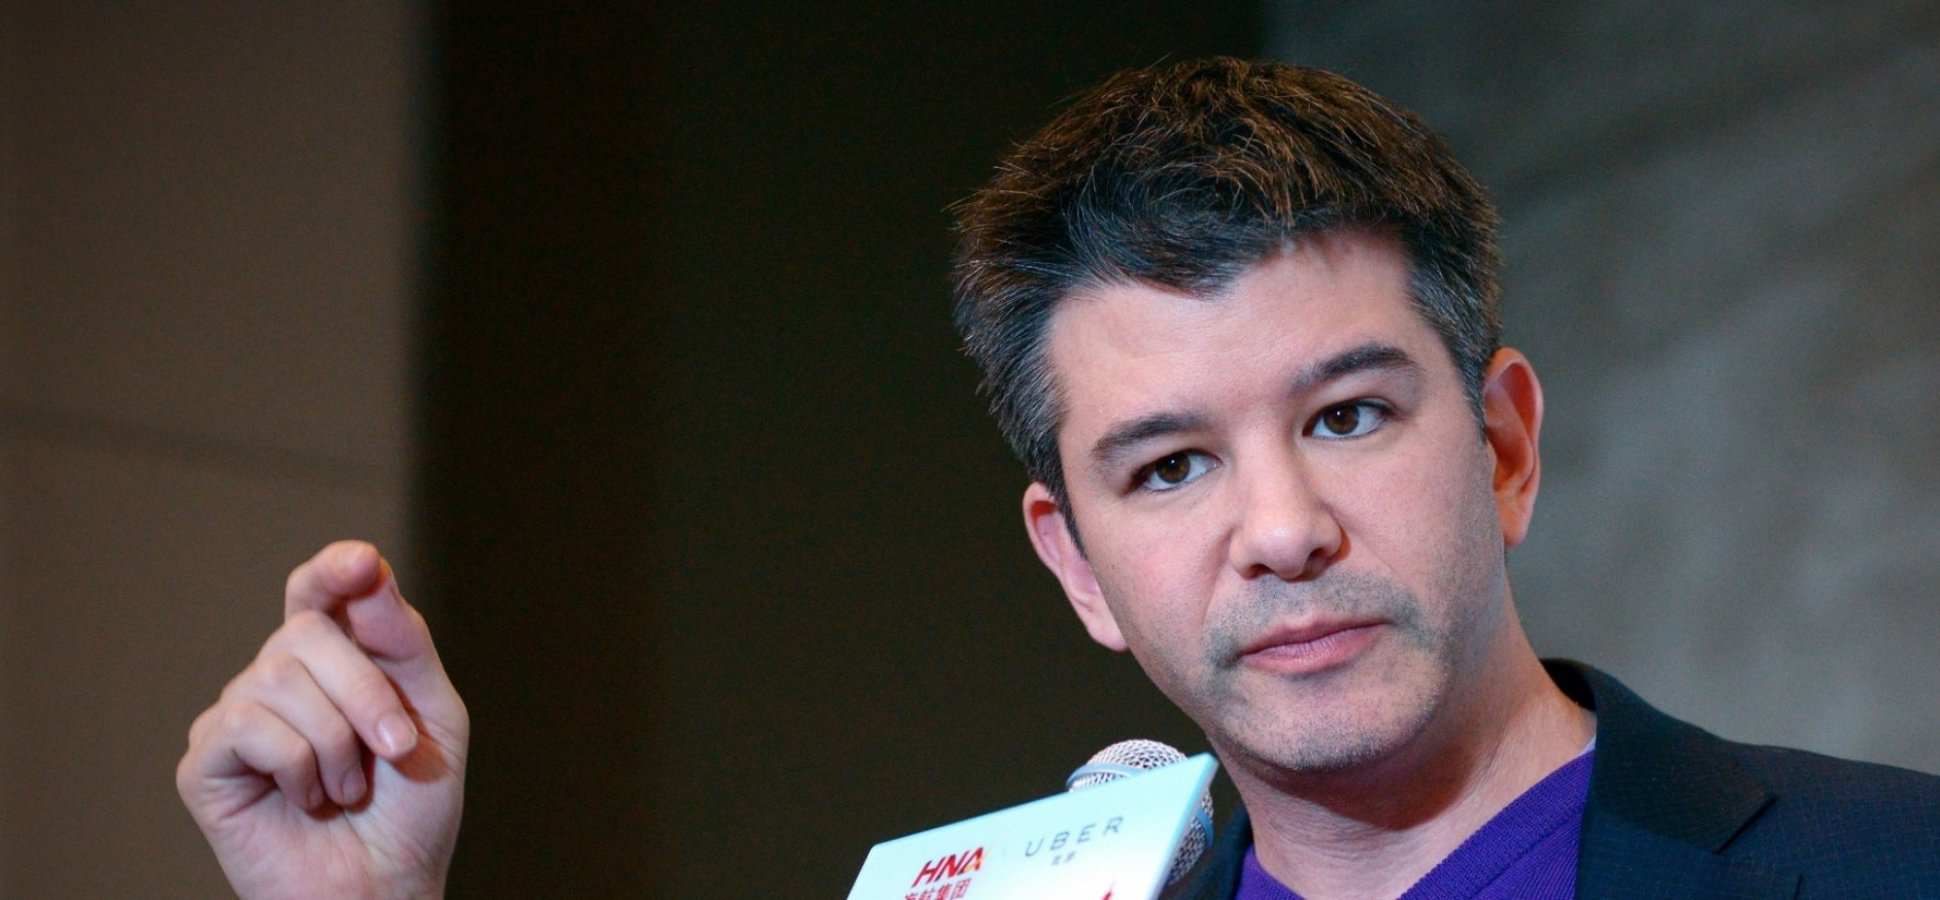 Uber Founder Travis Kalanick Wrote a 2,000-Word Letter He Never Sent to Employees. Here's What You Can Learn From It